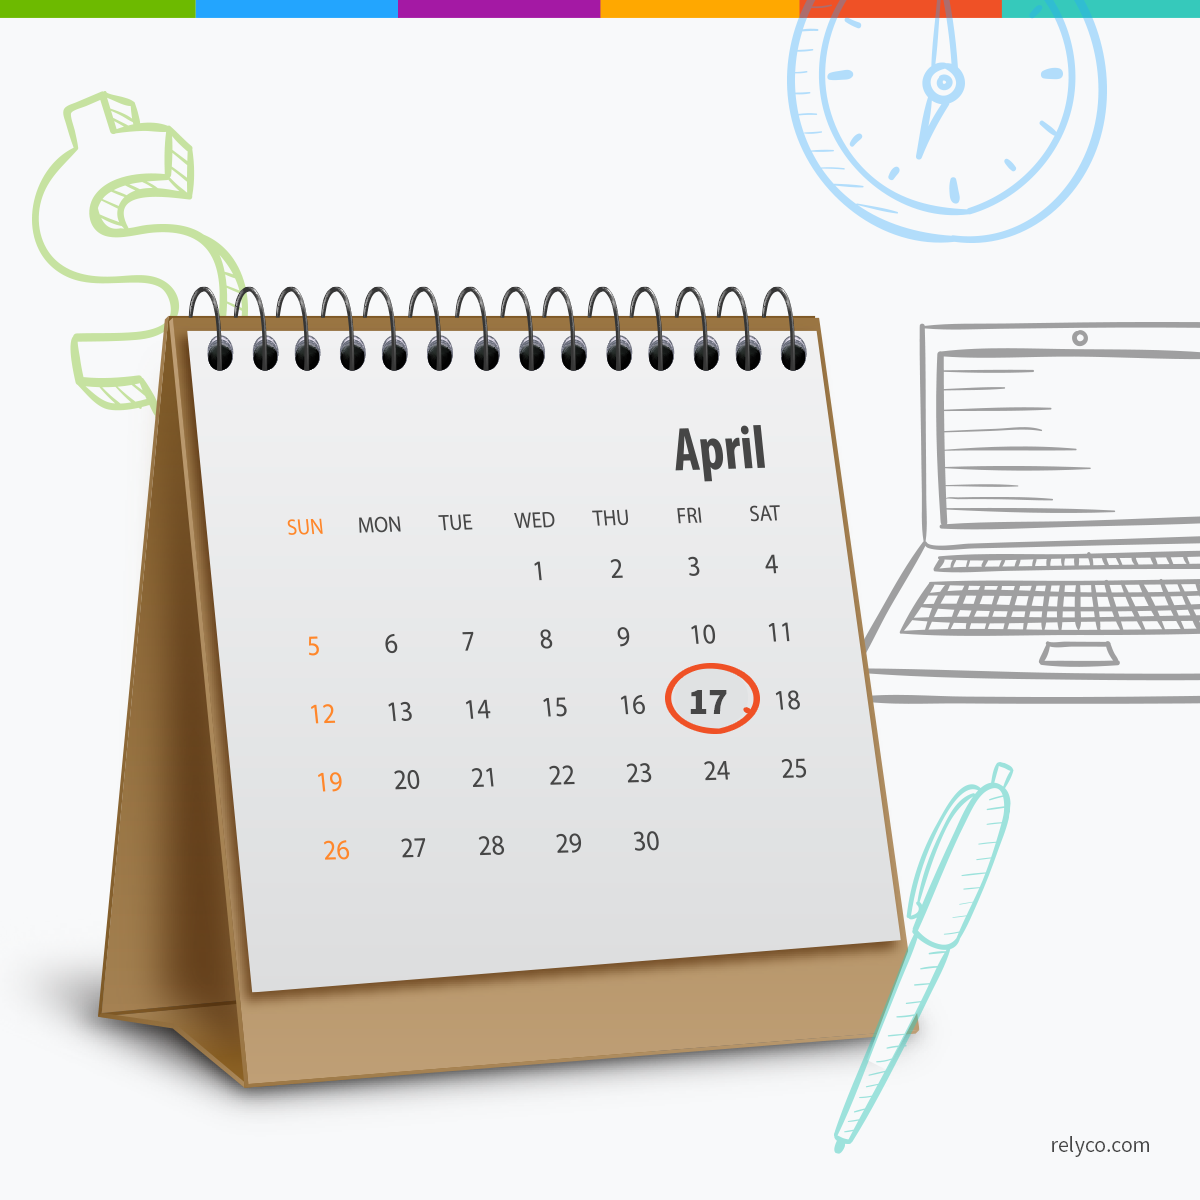 Tax Calendar 2016-2017: What Every Business Needs To Know « Relyco